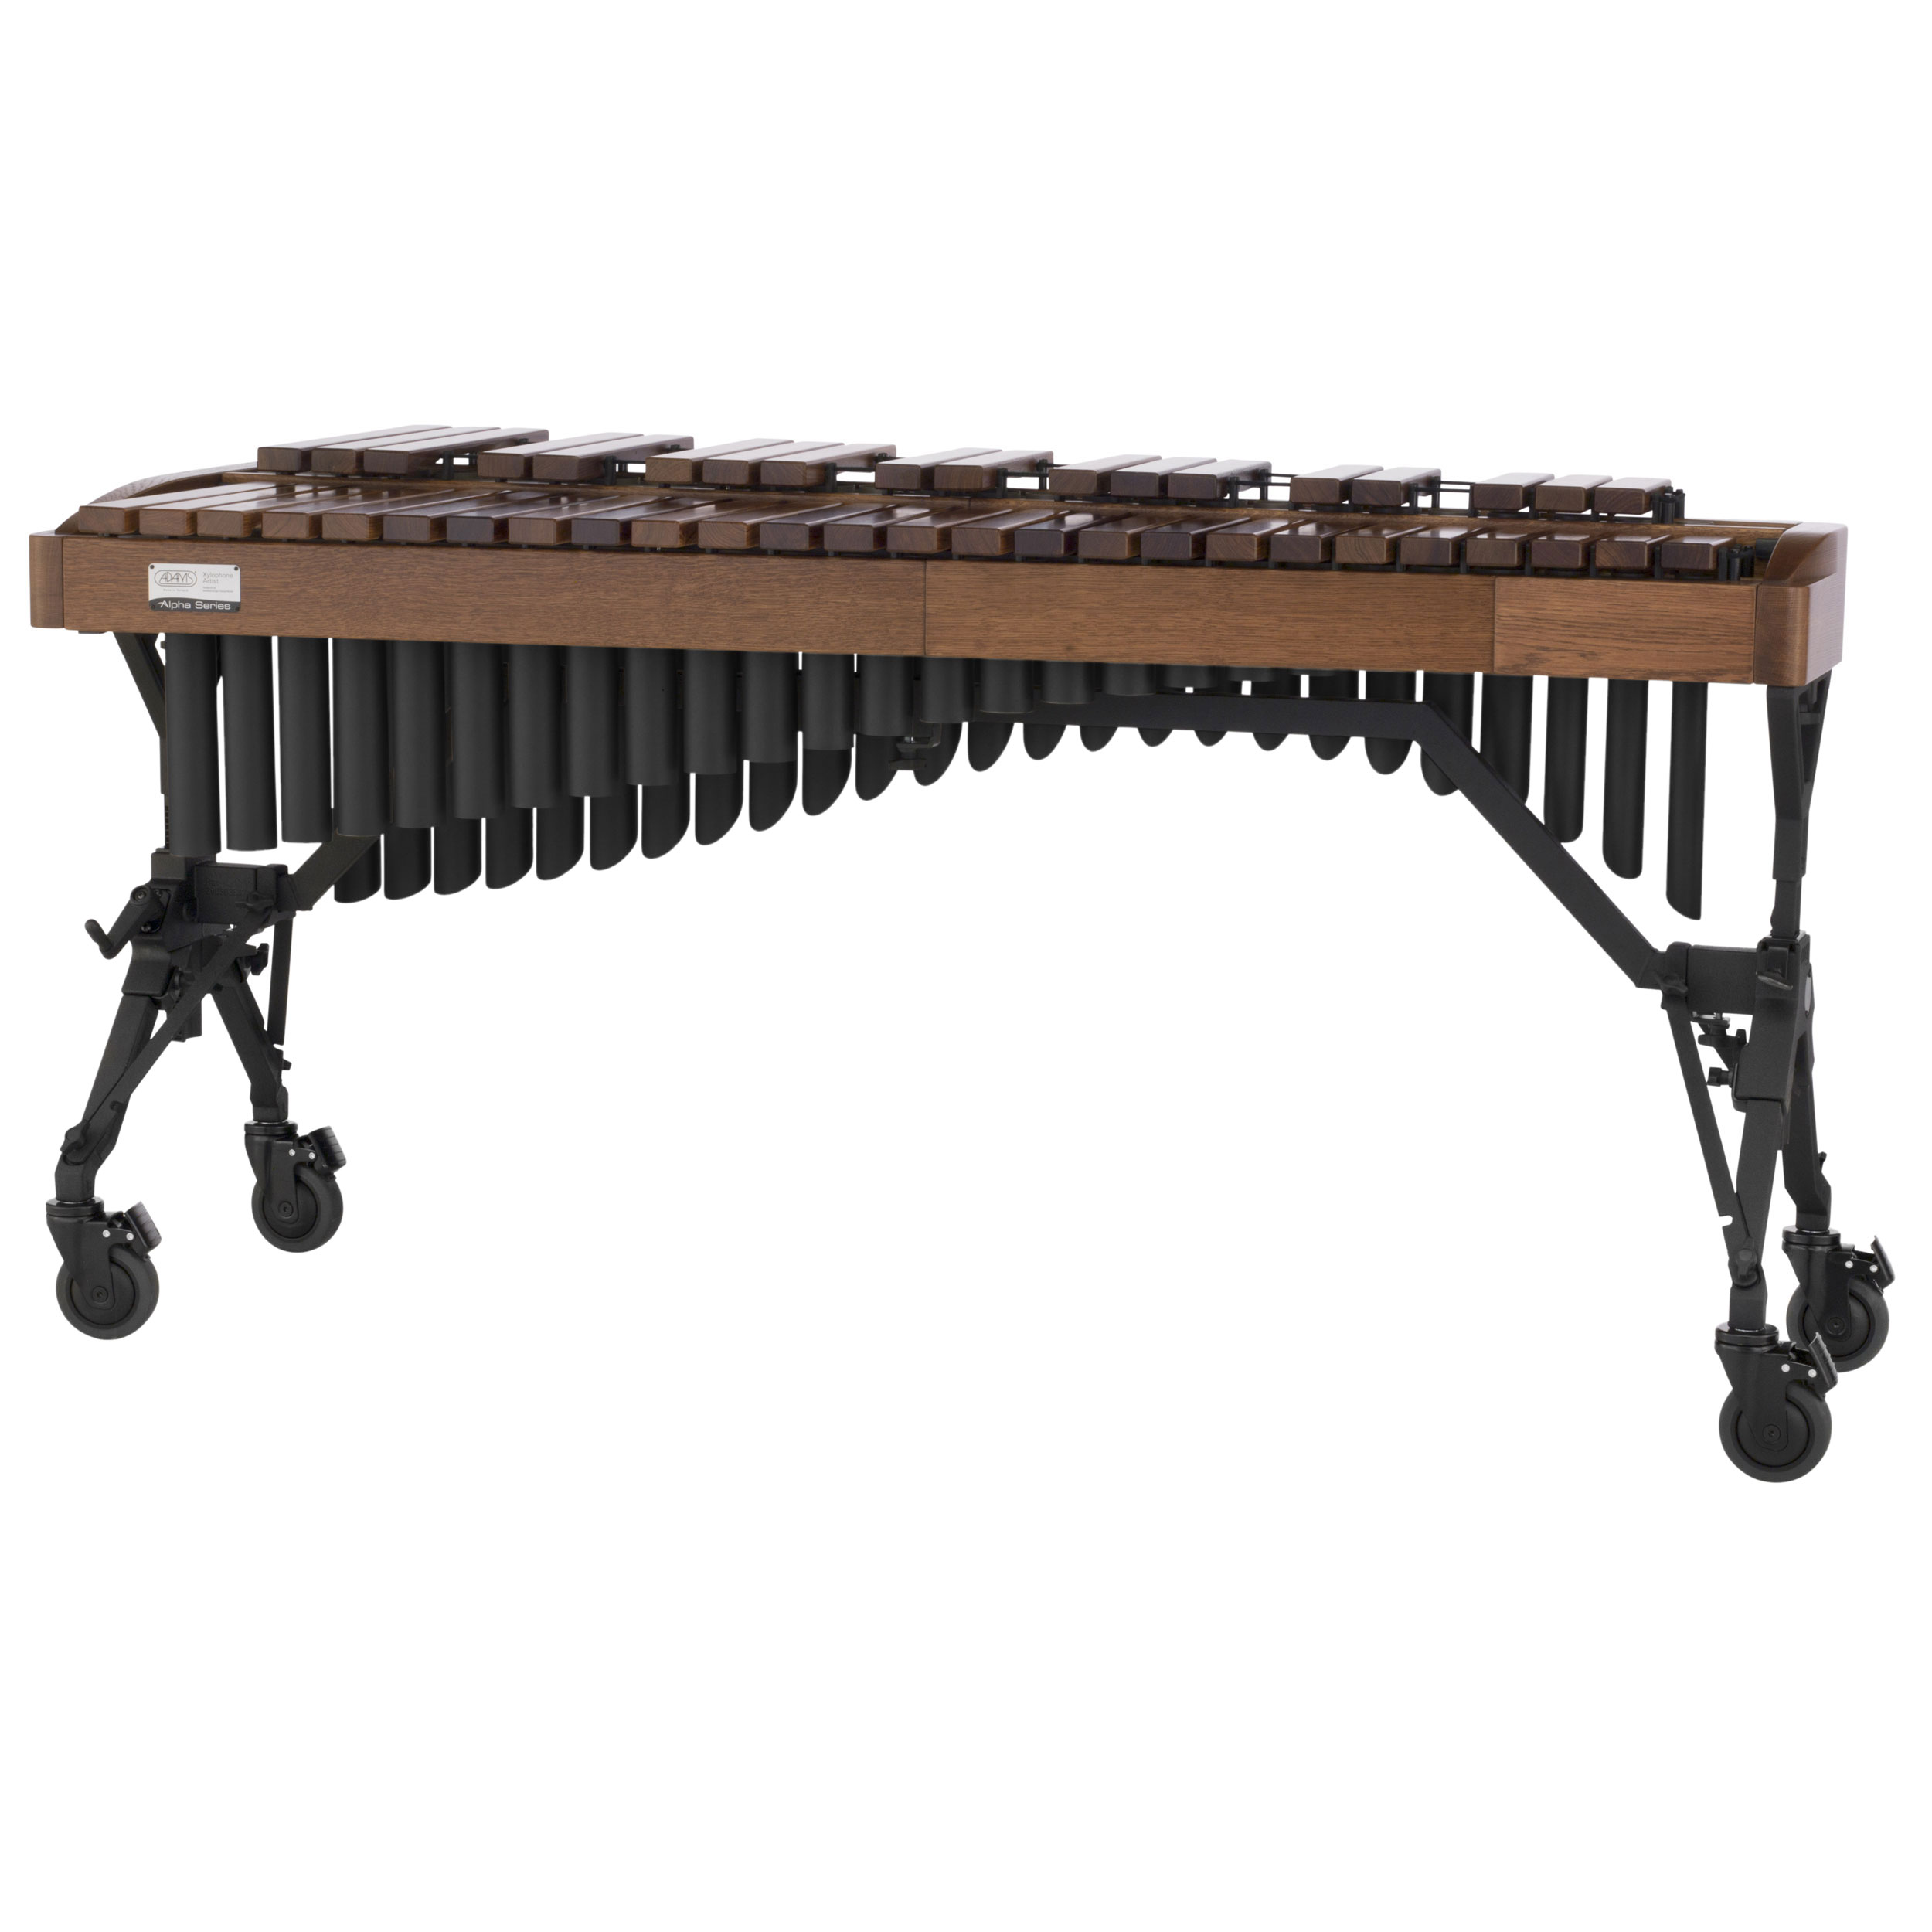 Adams 3.5 Octave Alpha Rosewood Xylophone with Walnut Oak Rails & Black Resonators